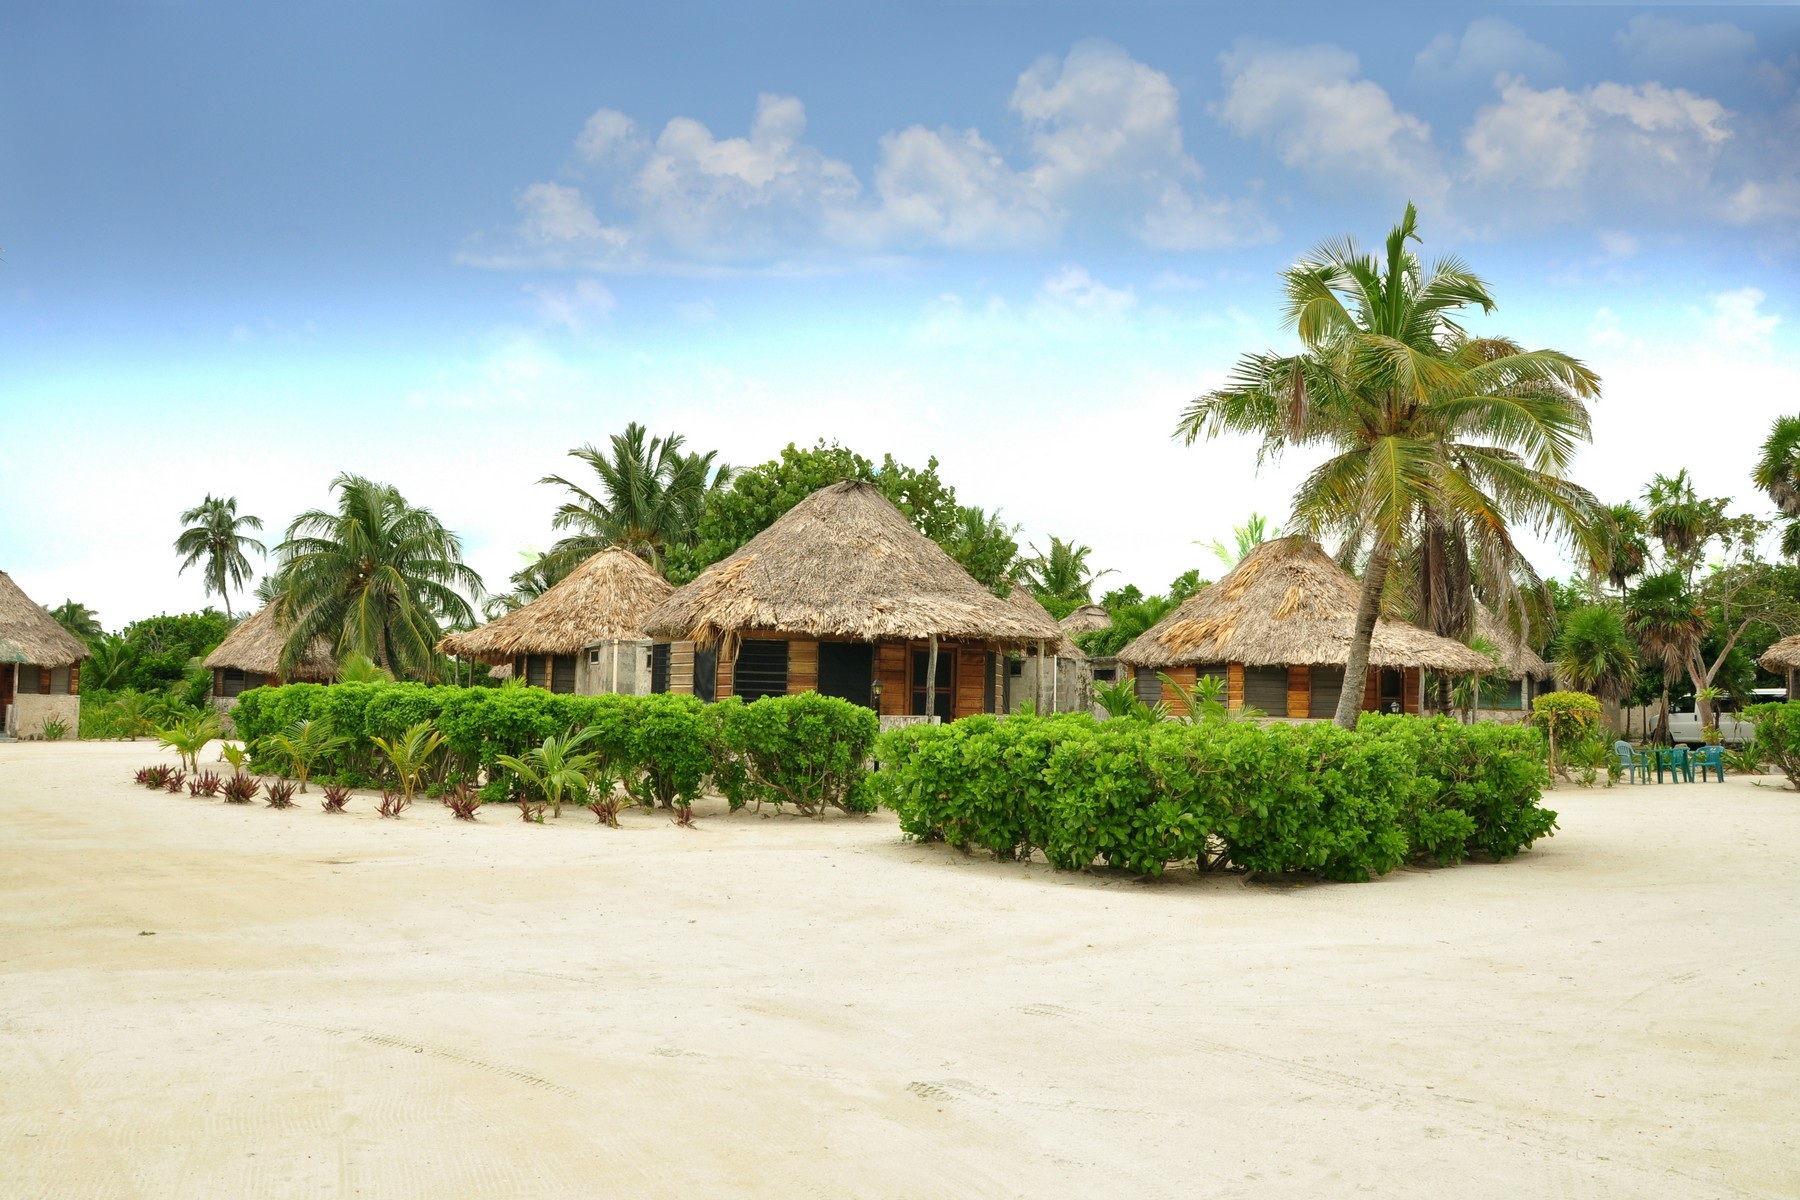 Additional photo for property listing at COSTA MAYA BEACHFRONT HOTEL  Xcalak, Quintana Roo 77940 Mexico